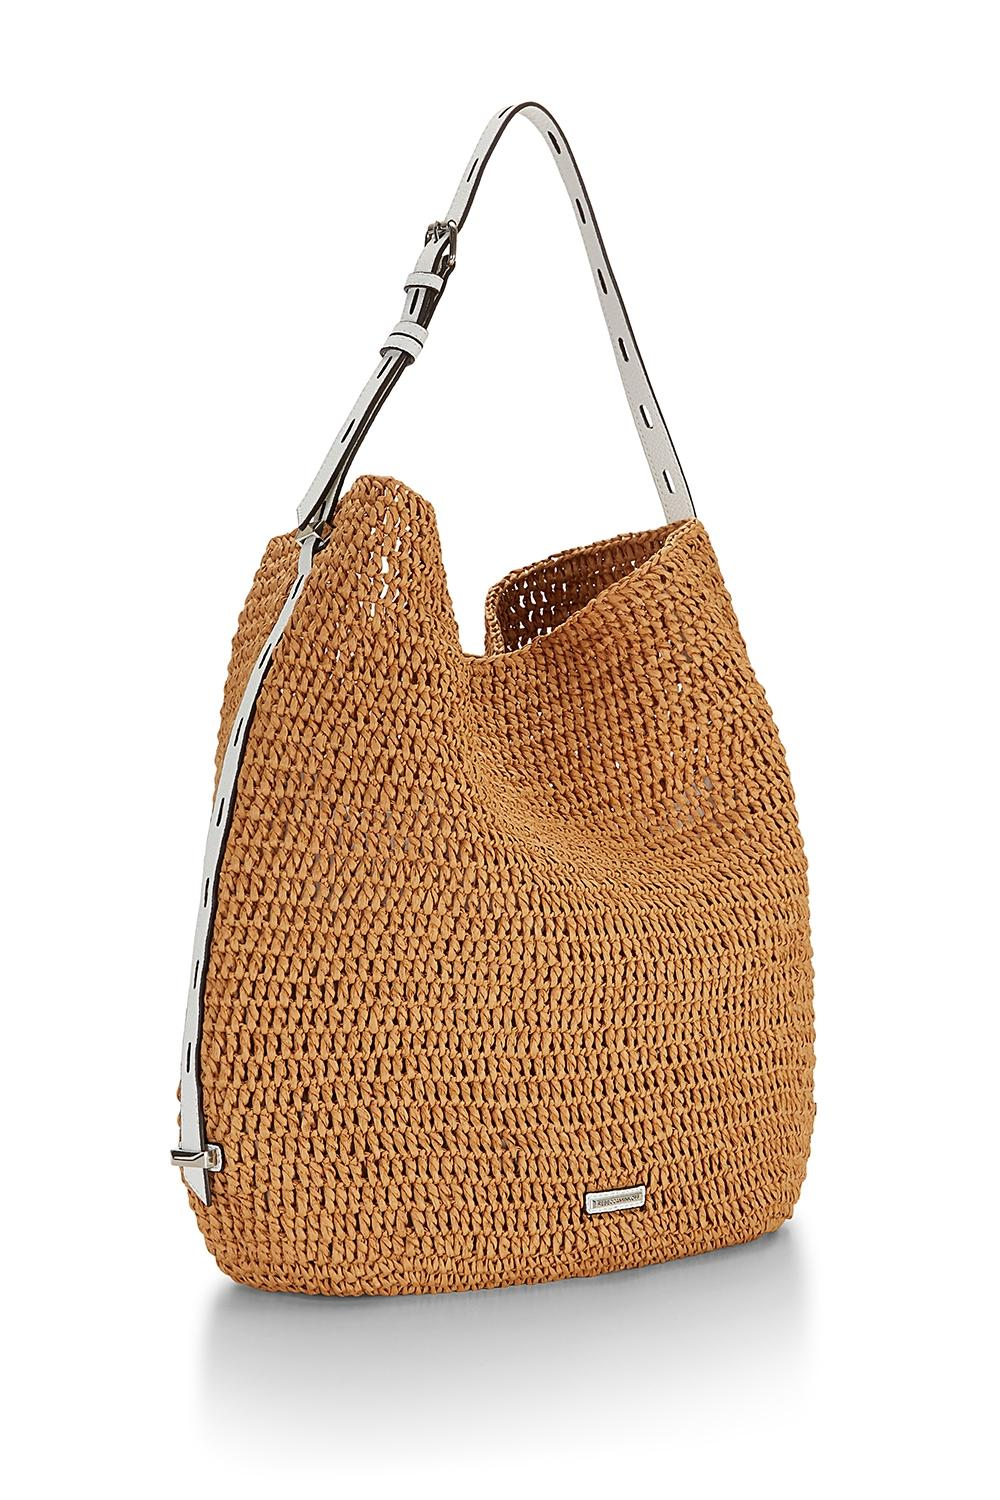 Free shipping on beach bags at downloadsolutionspa5tr.gq Shop cool and cute beach bags from top brands. Totally free shipping and returns.